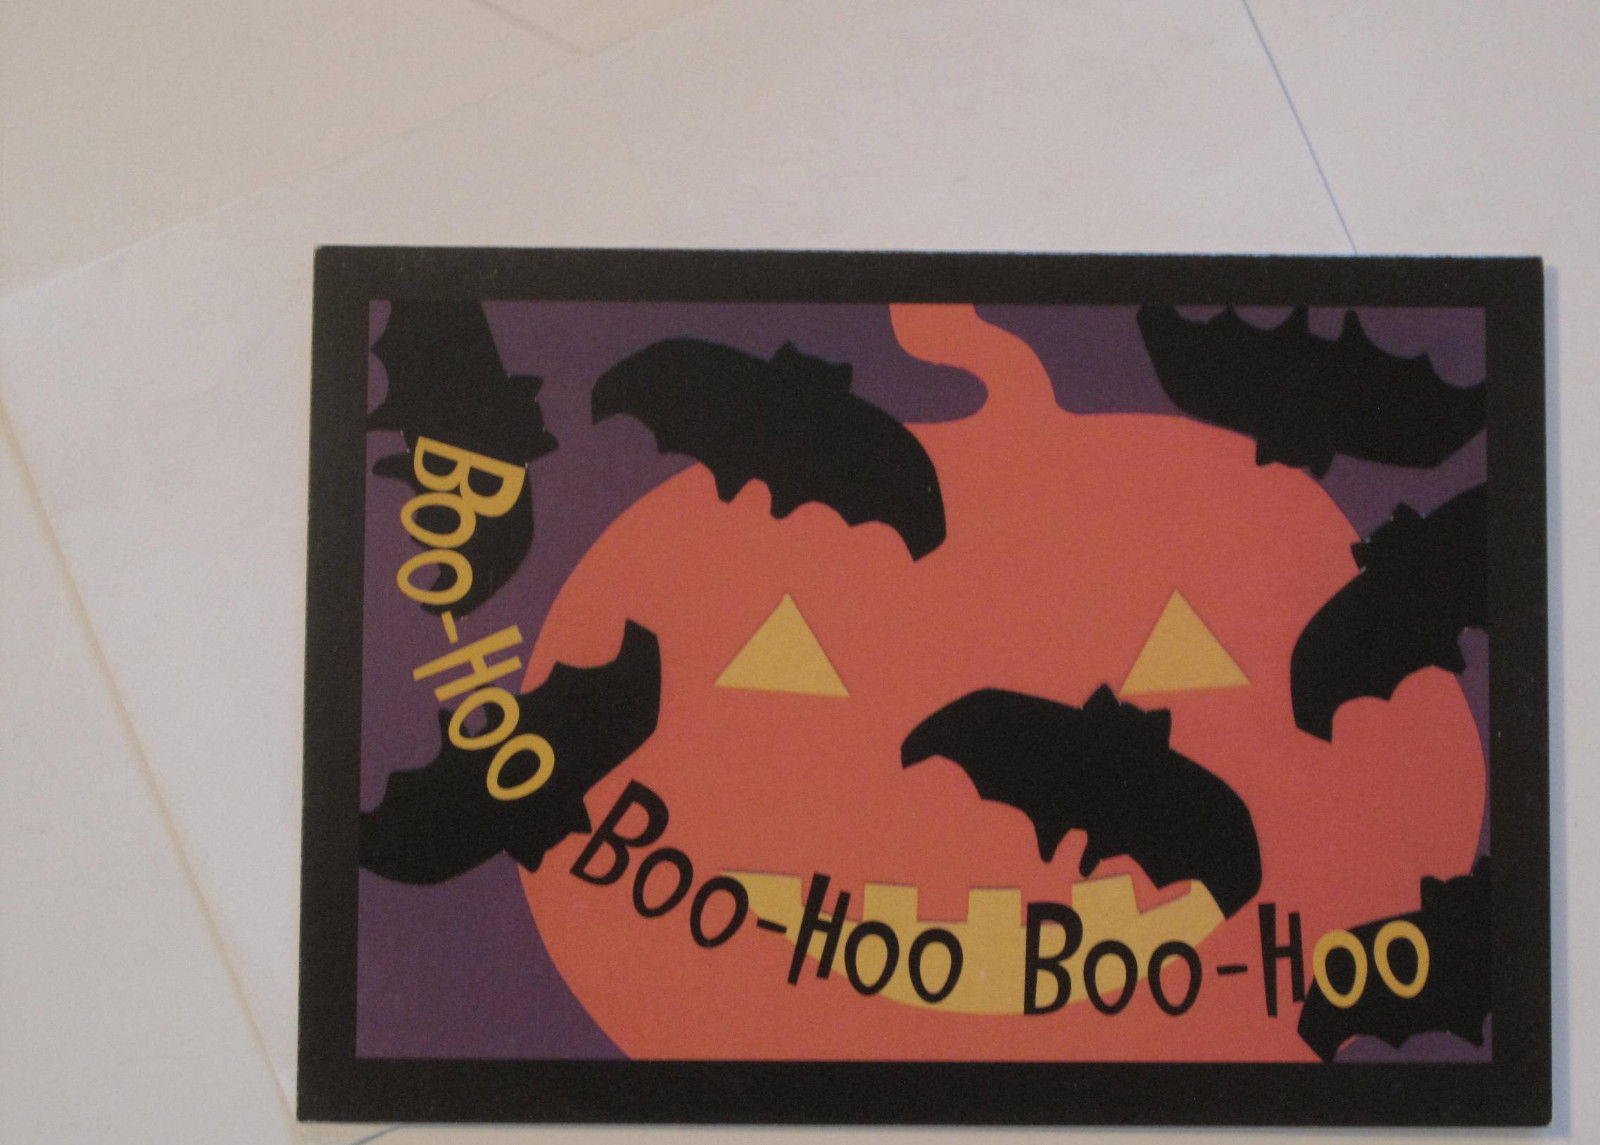 Primary image for Halloween Note Cards Boo-Hoo Boo-Hoo Pumpkin and Bats, Set of 10, Blank Interior